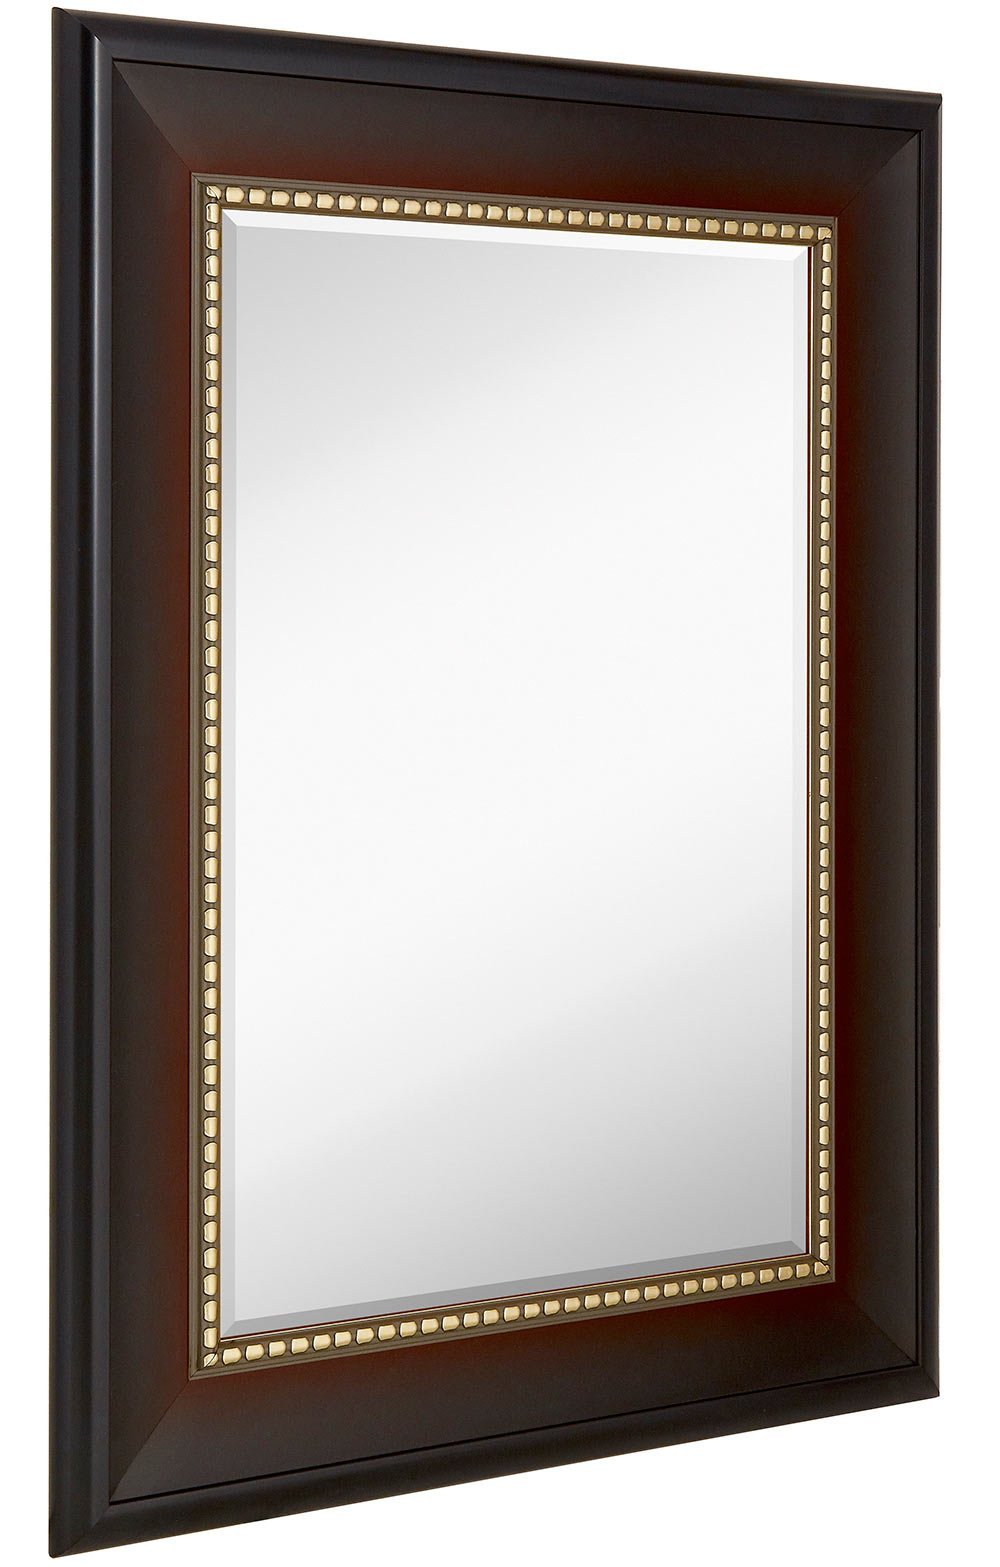 Wide Transitional Framed Mirror | 1'' Beveled Silver Backed Glass | Vanity, Bedroom, or Bathroom | Mirrored Rectangle Hangs Horizontal or Vertical Thick Frame | 30'' x 40'' Inches Style A